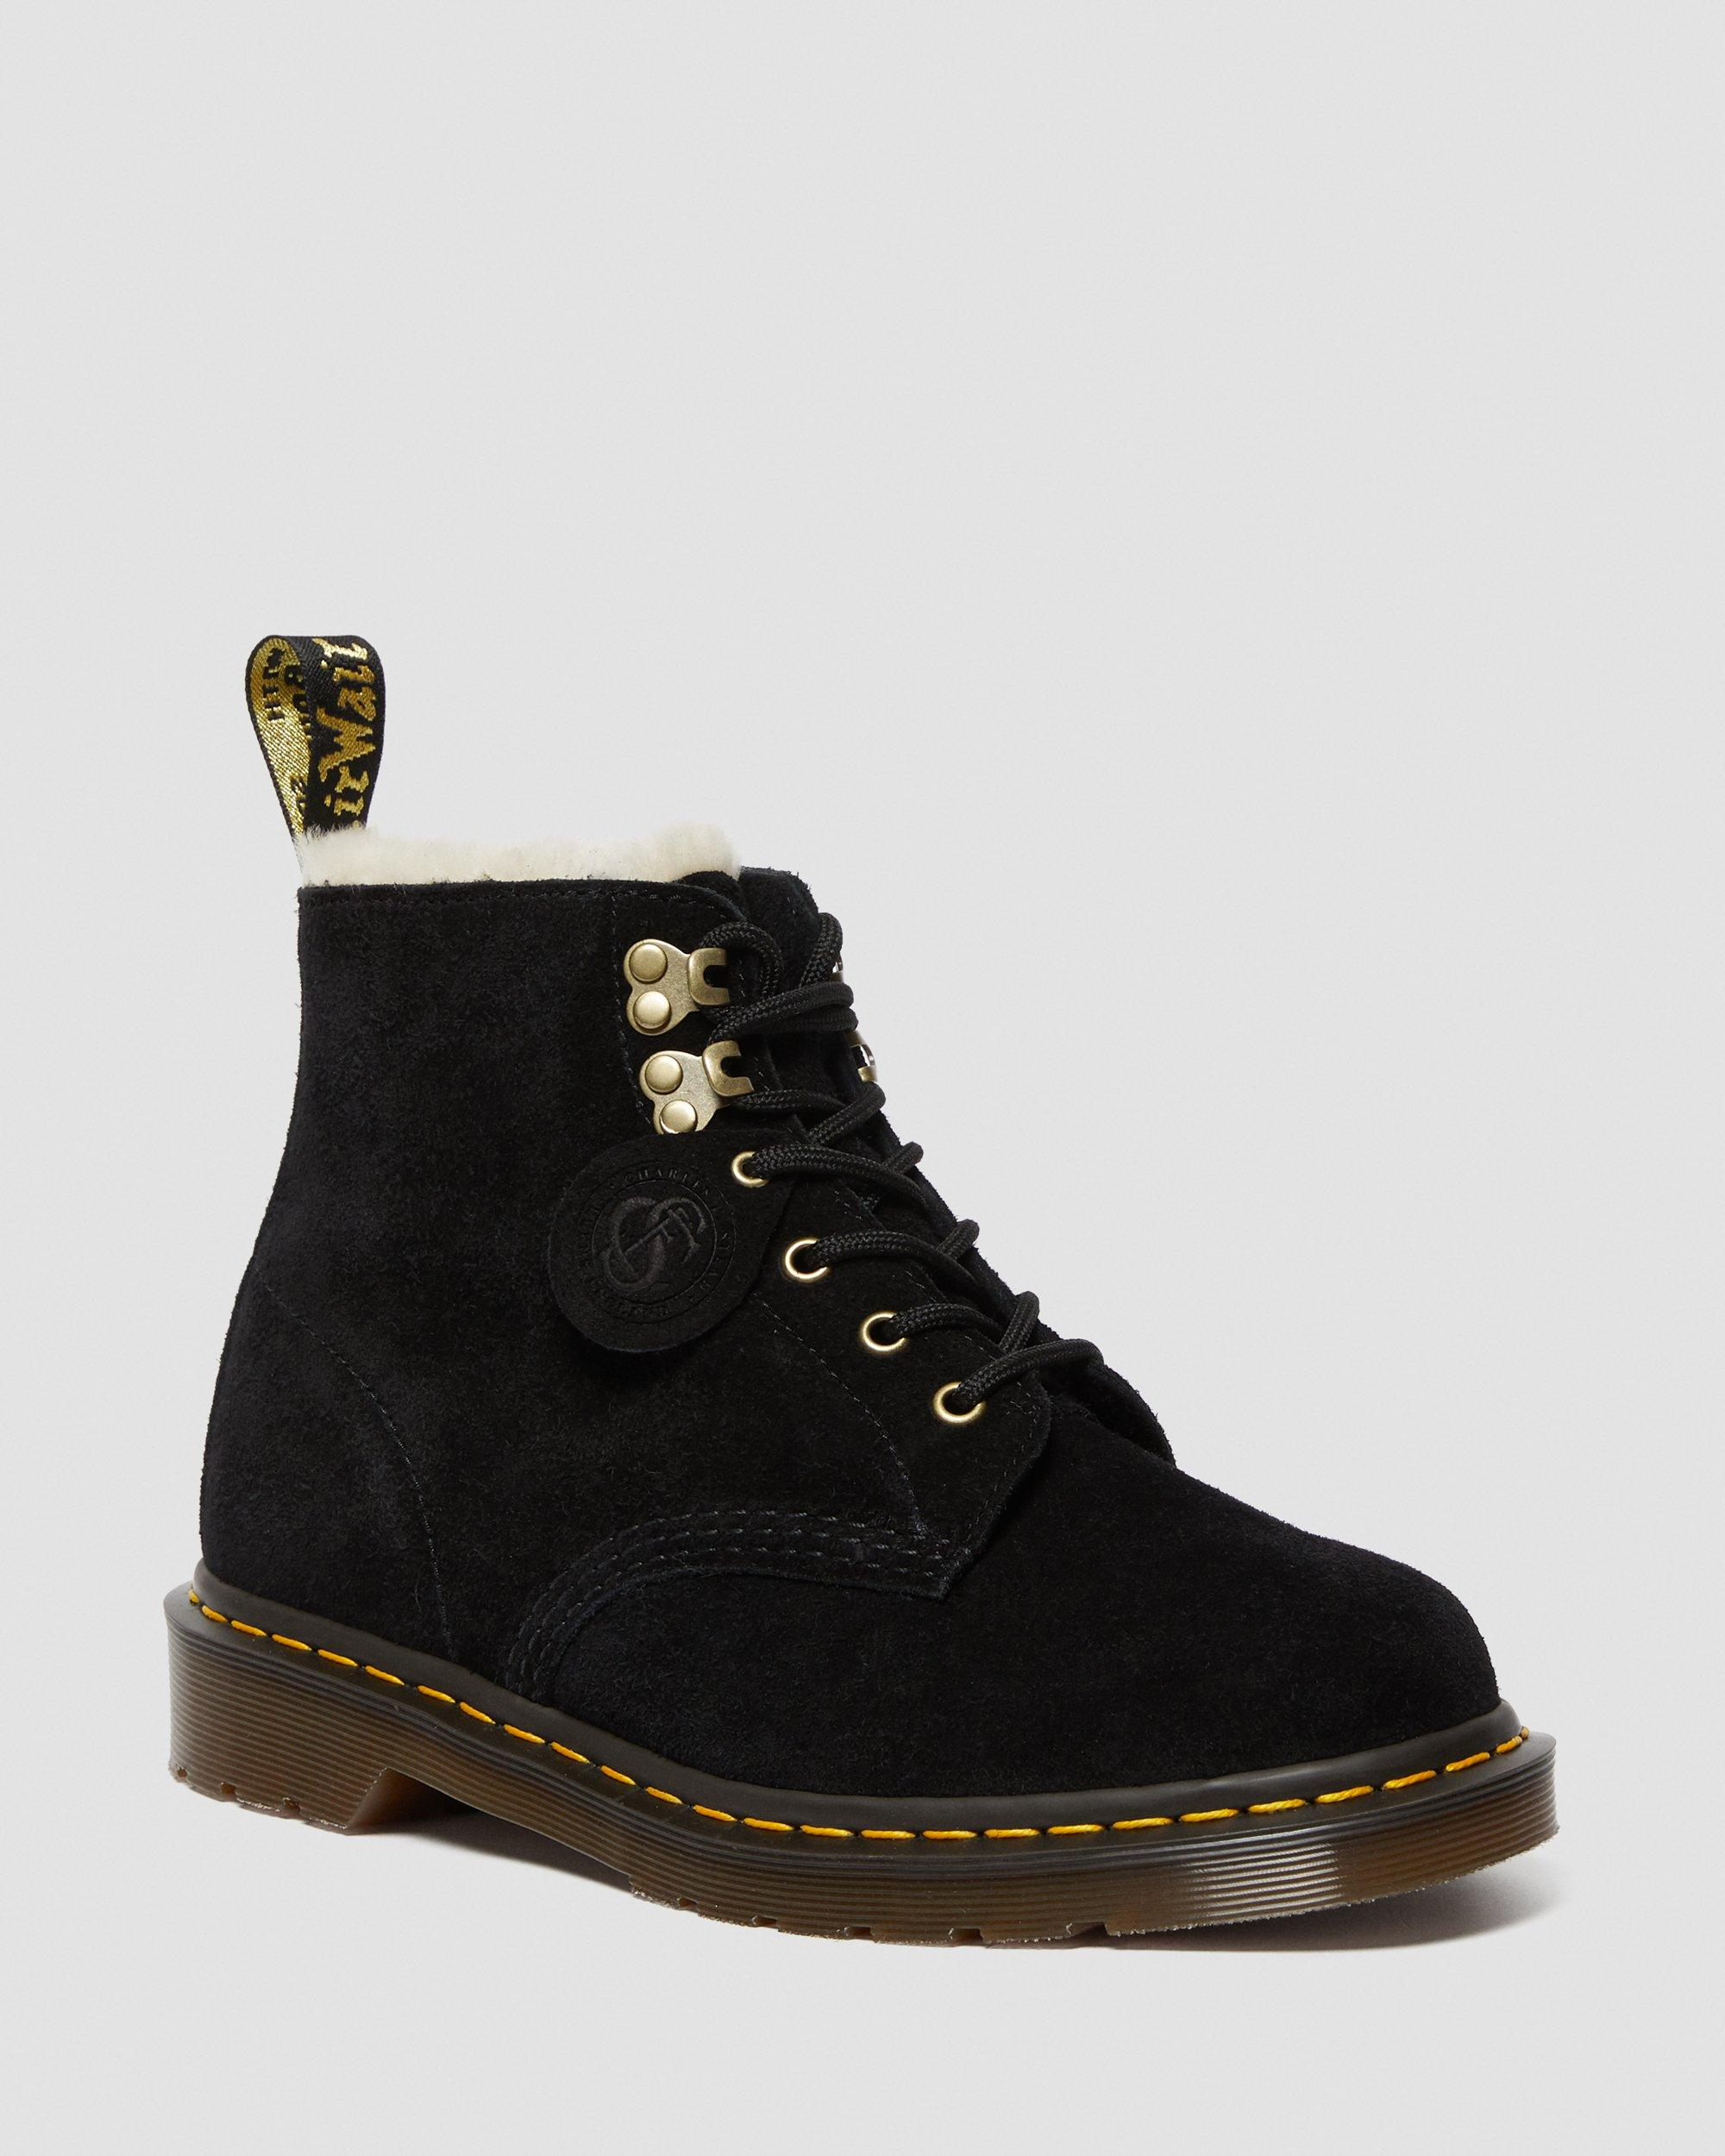 101 SUEDE SHEARLING LINED BOOTS | Dr